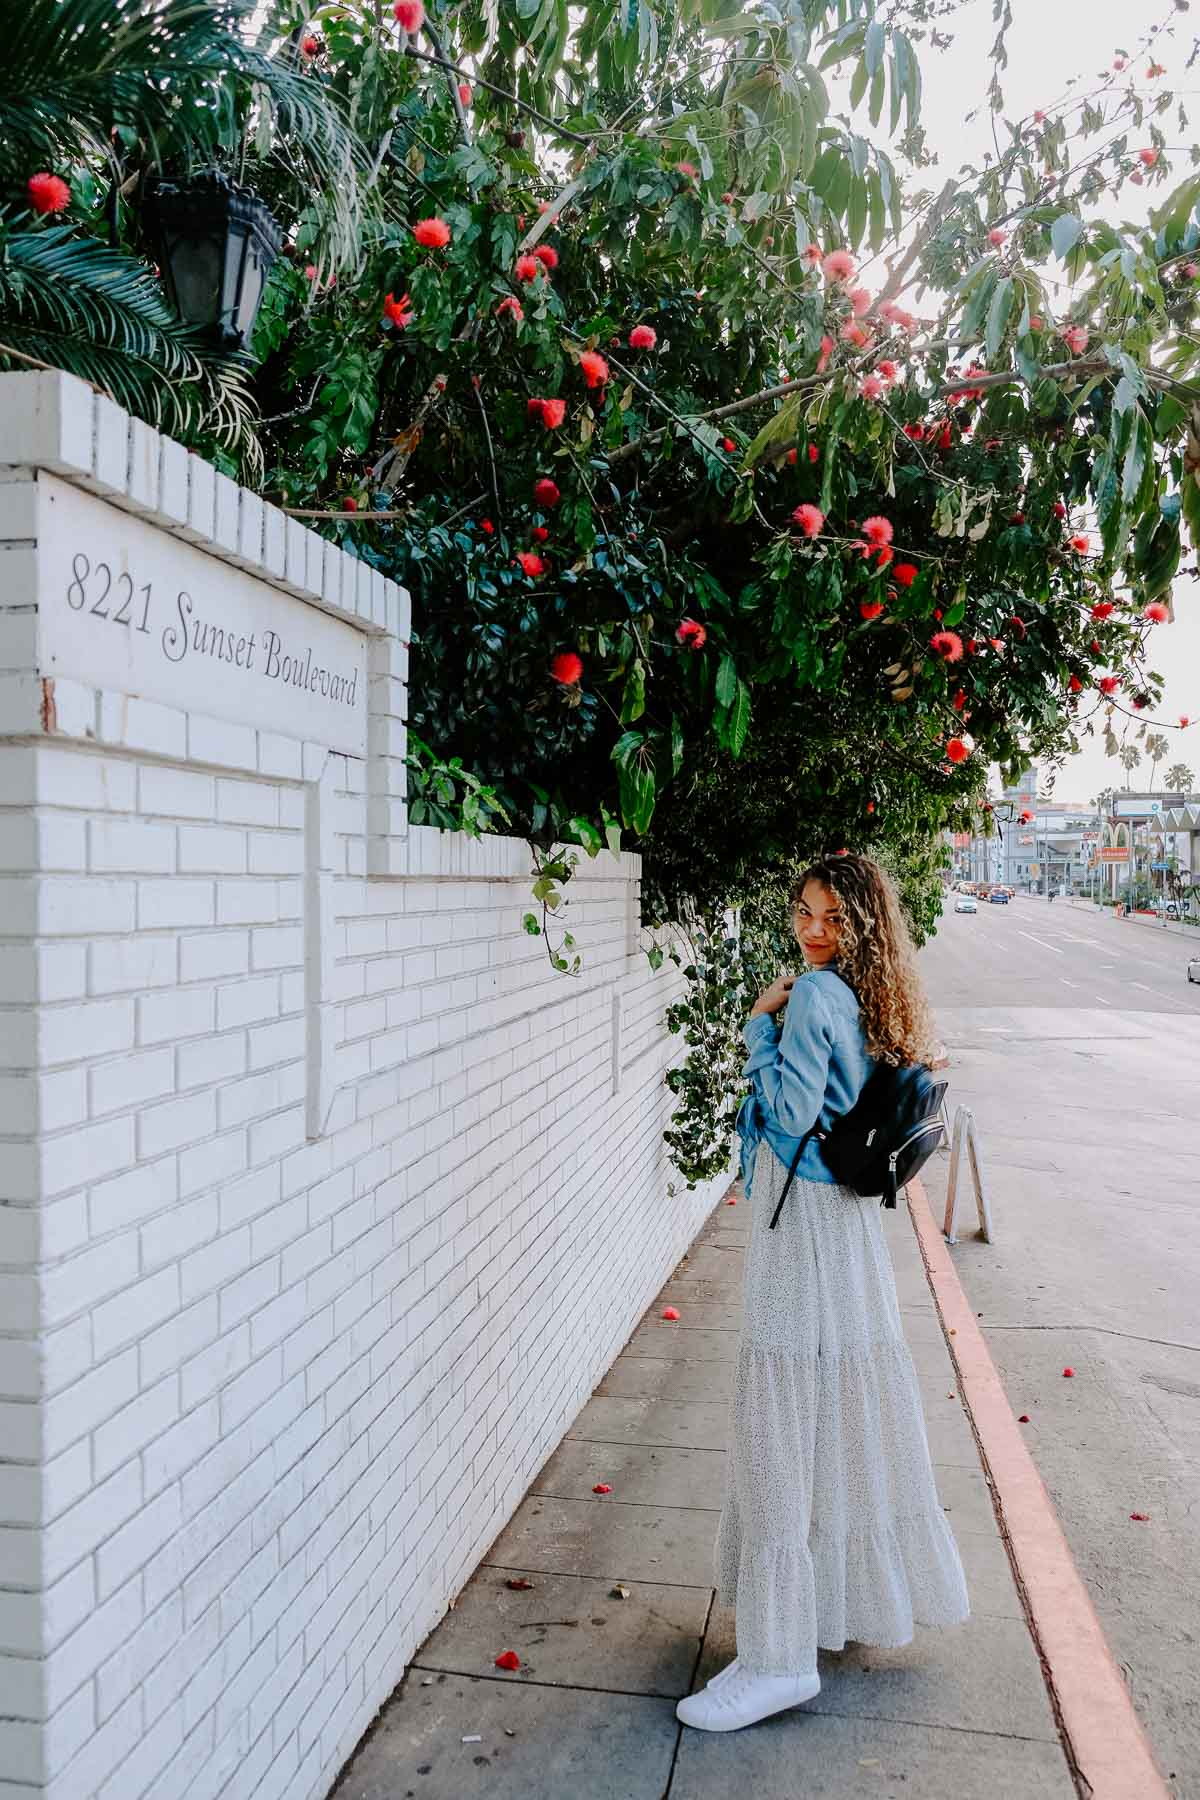 Planning a trip to LA and need to know what to wear? This post has the LA packing essentials that you need for a trip to Los Angeles! This maxi dress outfit would be perfect to add to your LA outfits!